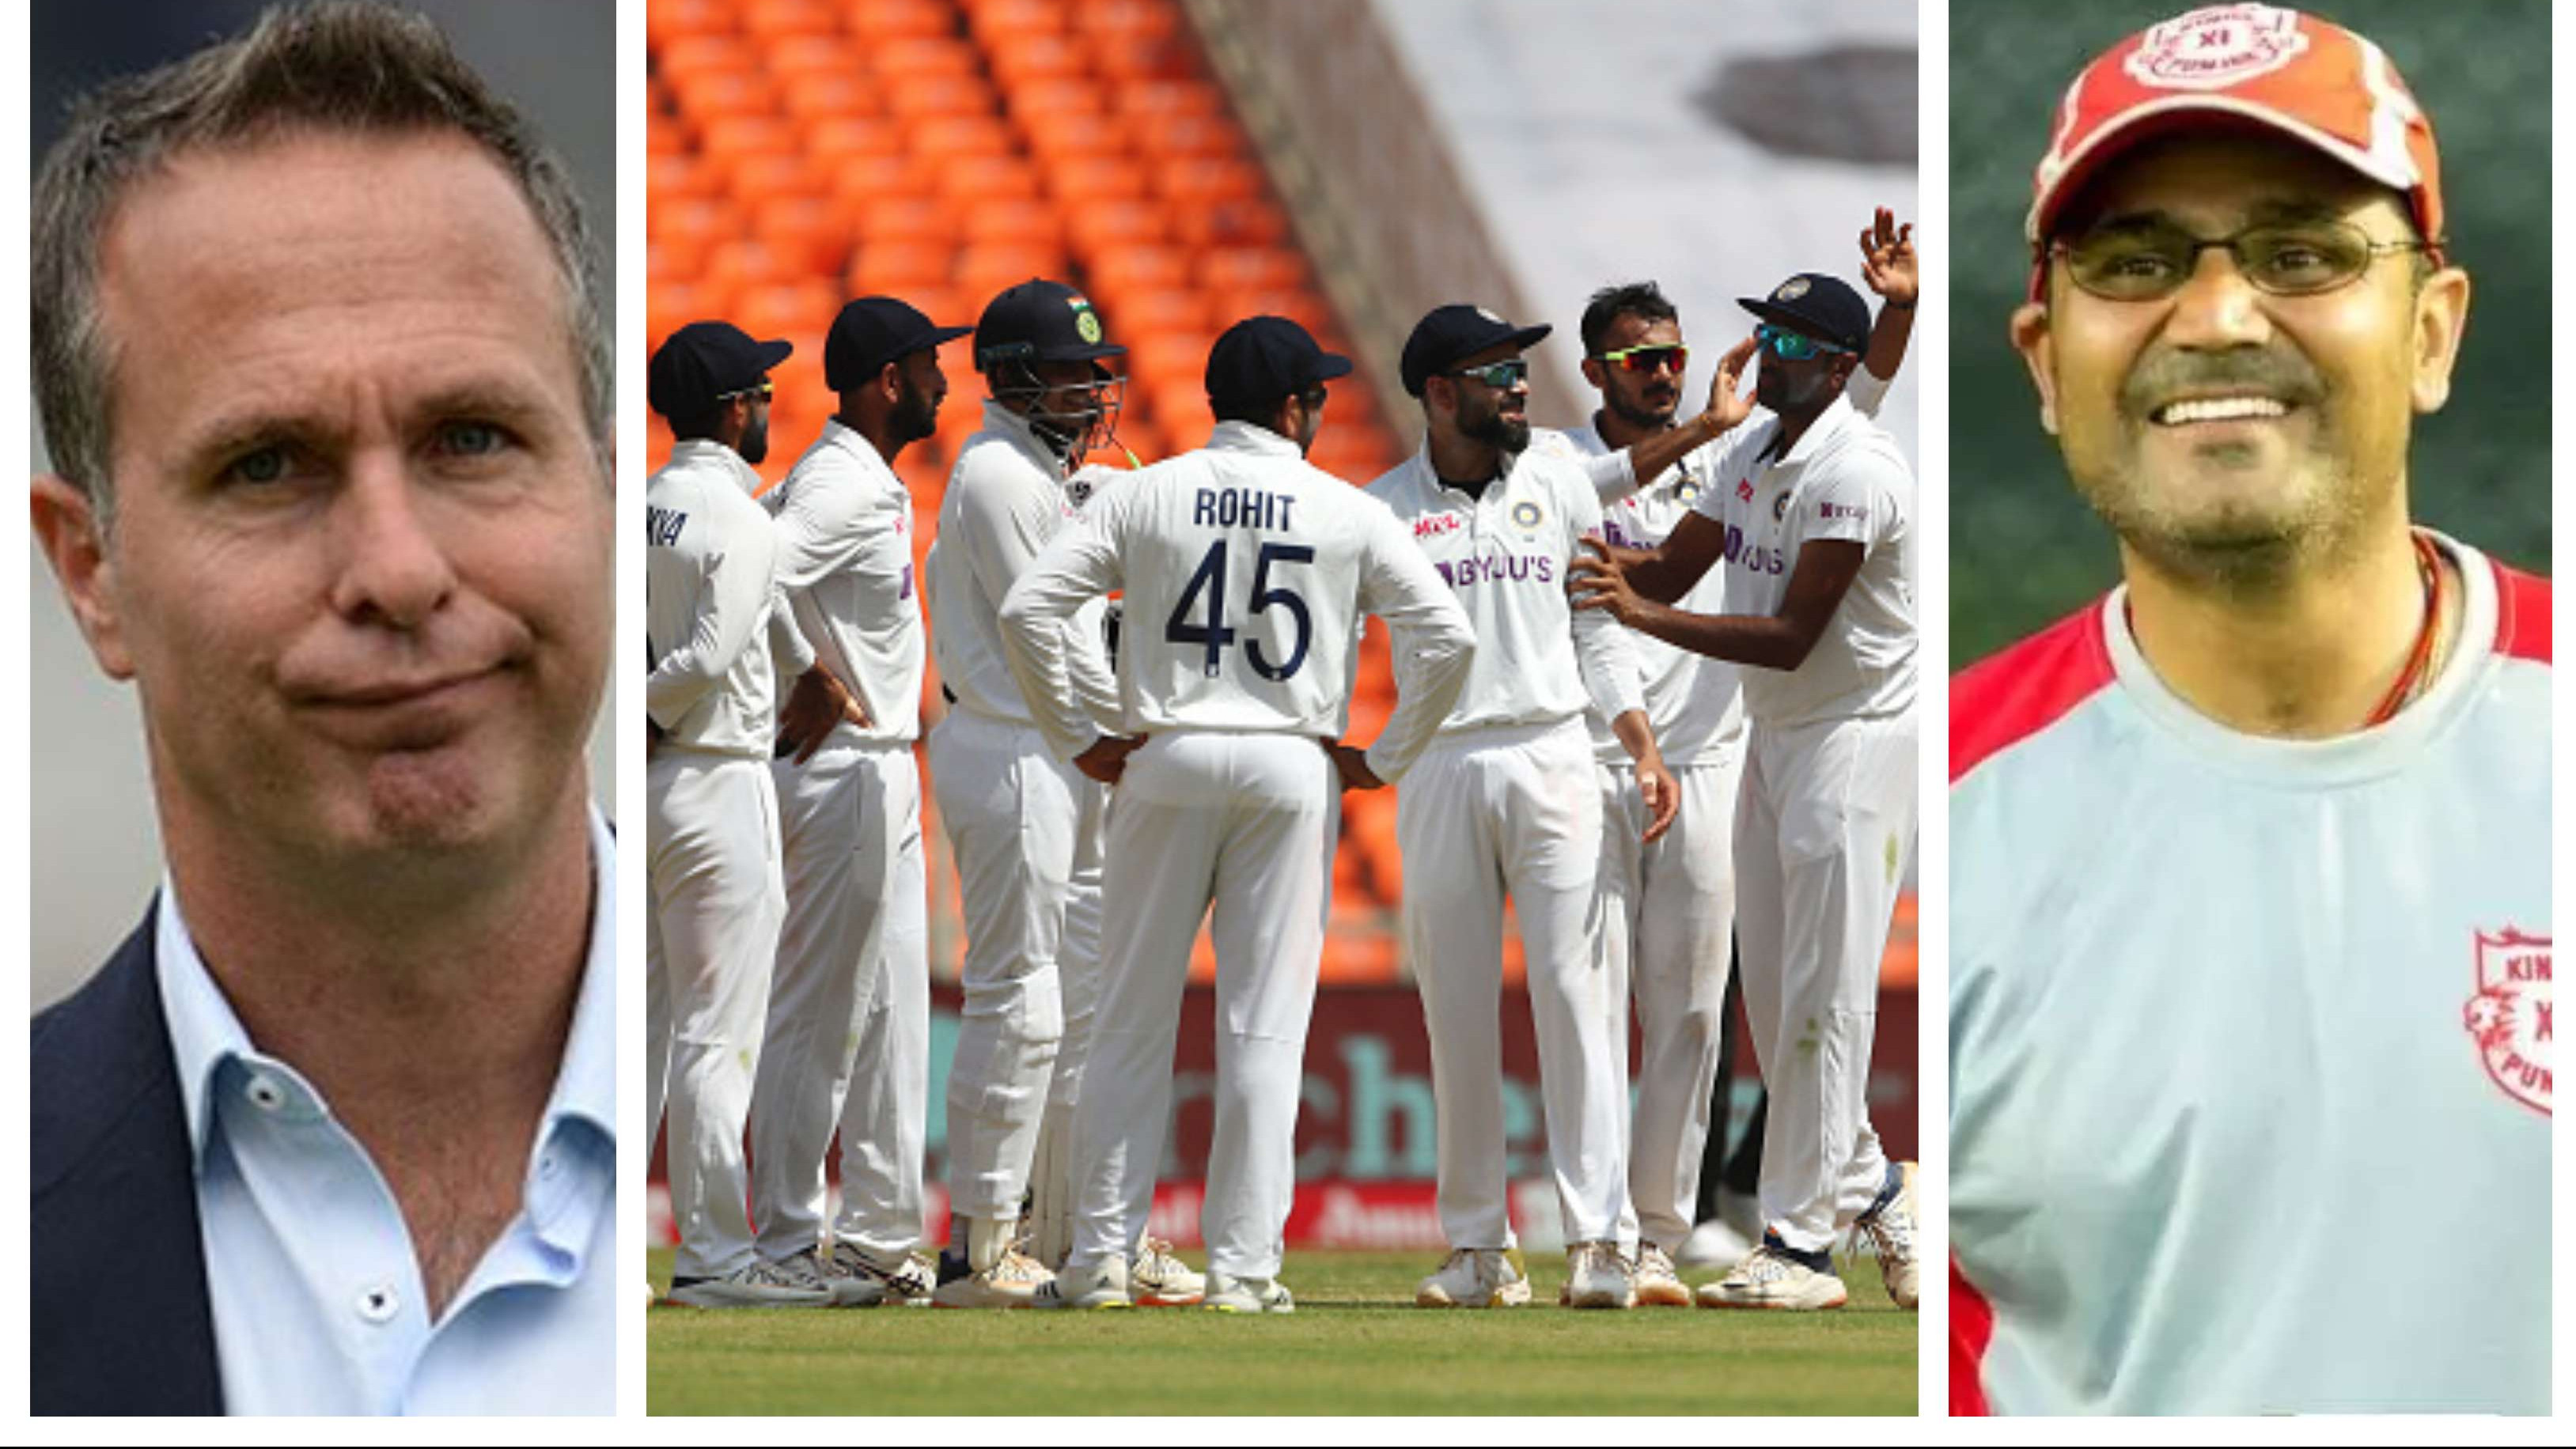 IND v ENG 2021: Cricket fraternity reacts as India thrash England by an innings and 25 runs to seal 3-1 series win